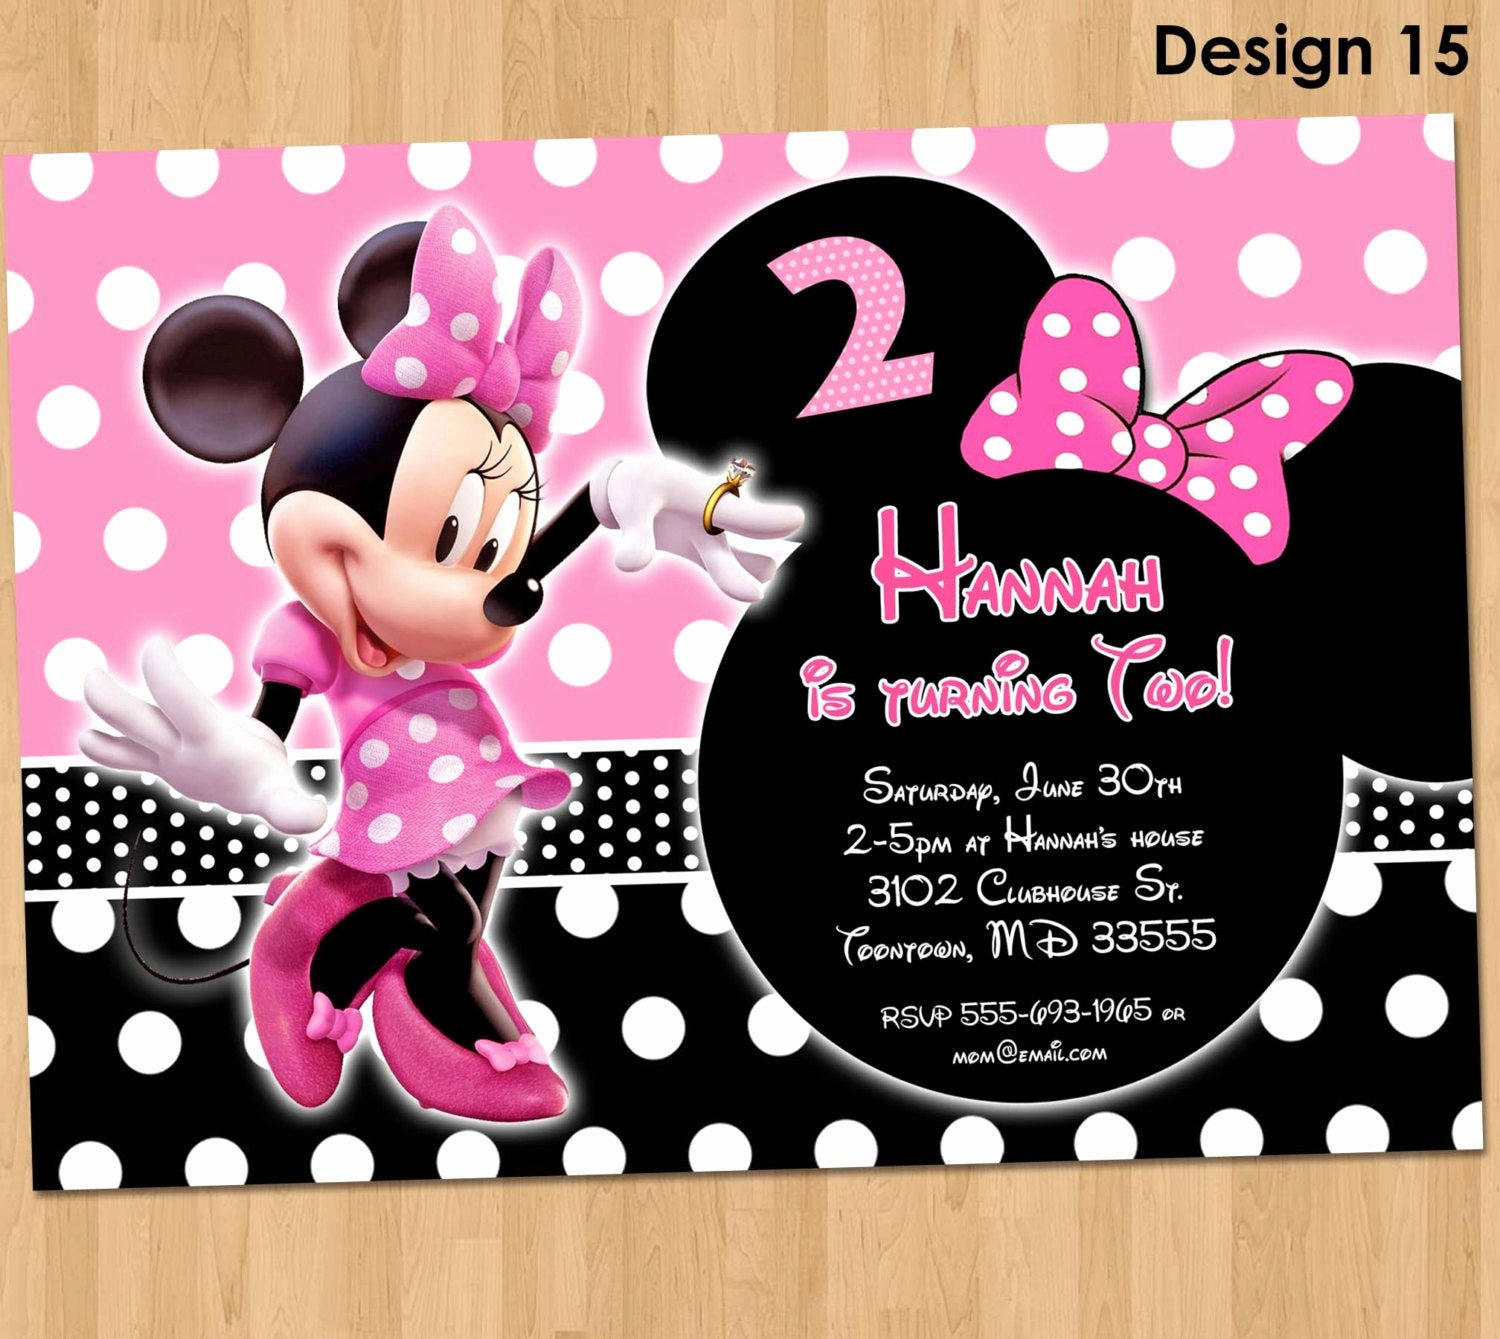 Minnie Mouse Birthday Invitations Unique Minnie Mouse Invitation Minnie Mouse Birthday Invitation